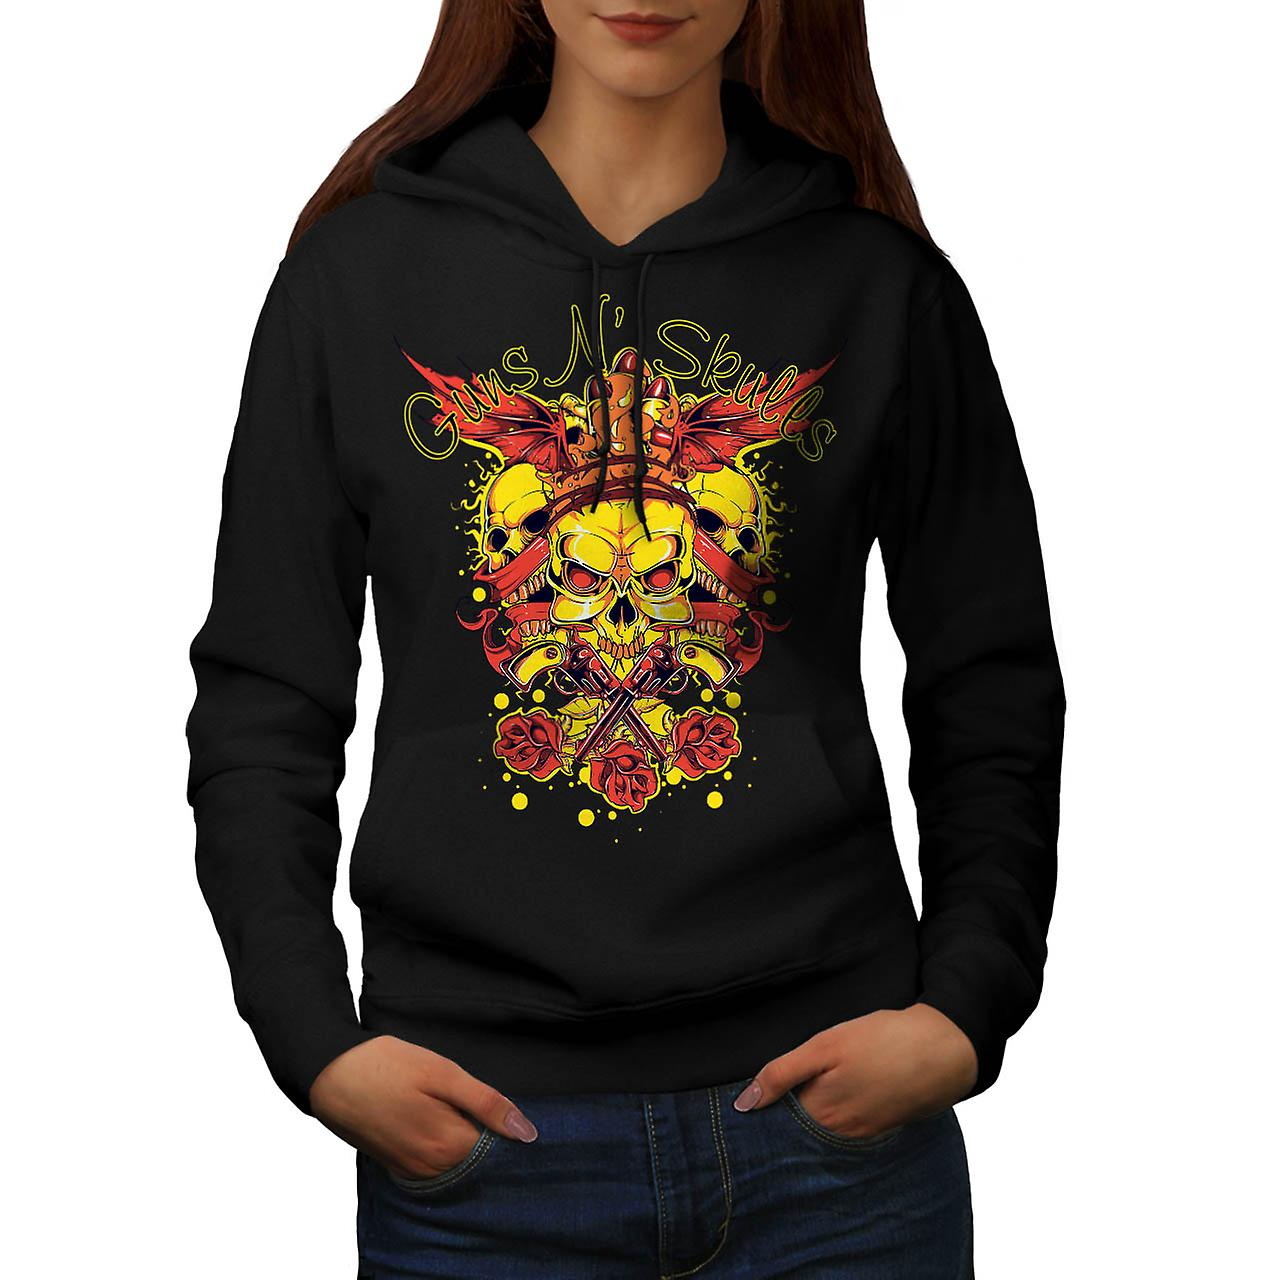 Guns And Skulls Brawl King Demon Women Black Hoodie | Wellcoda